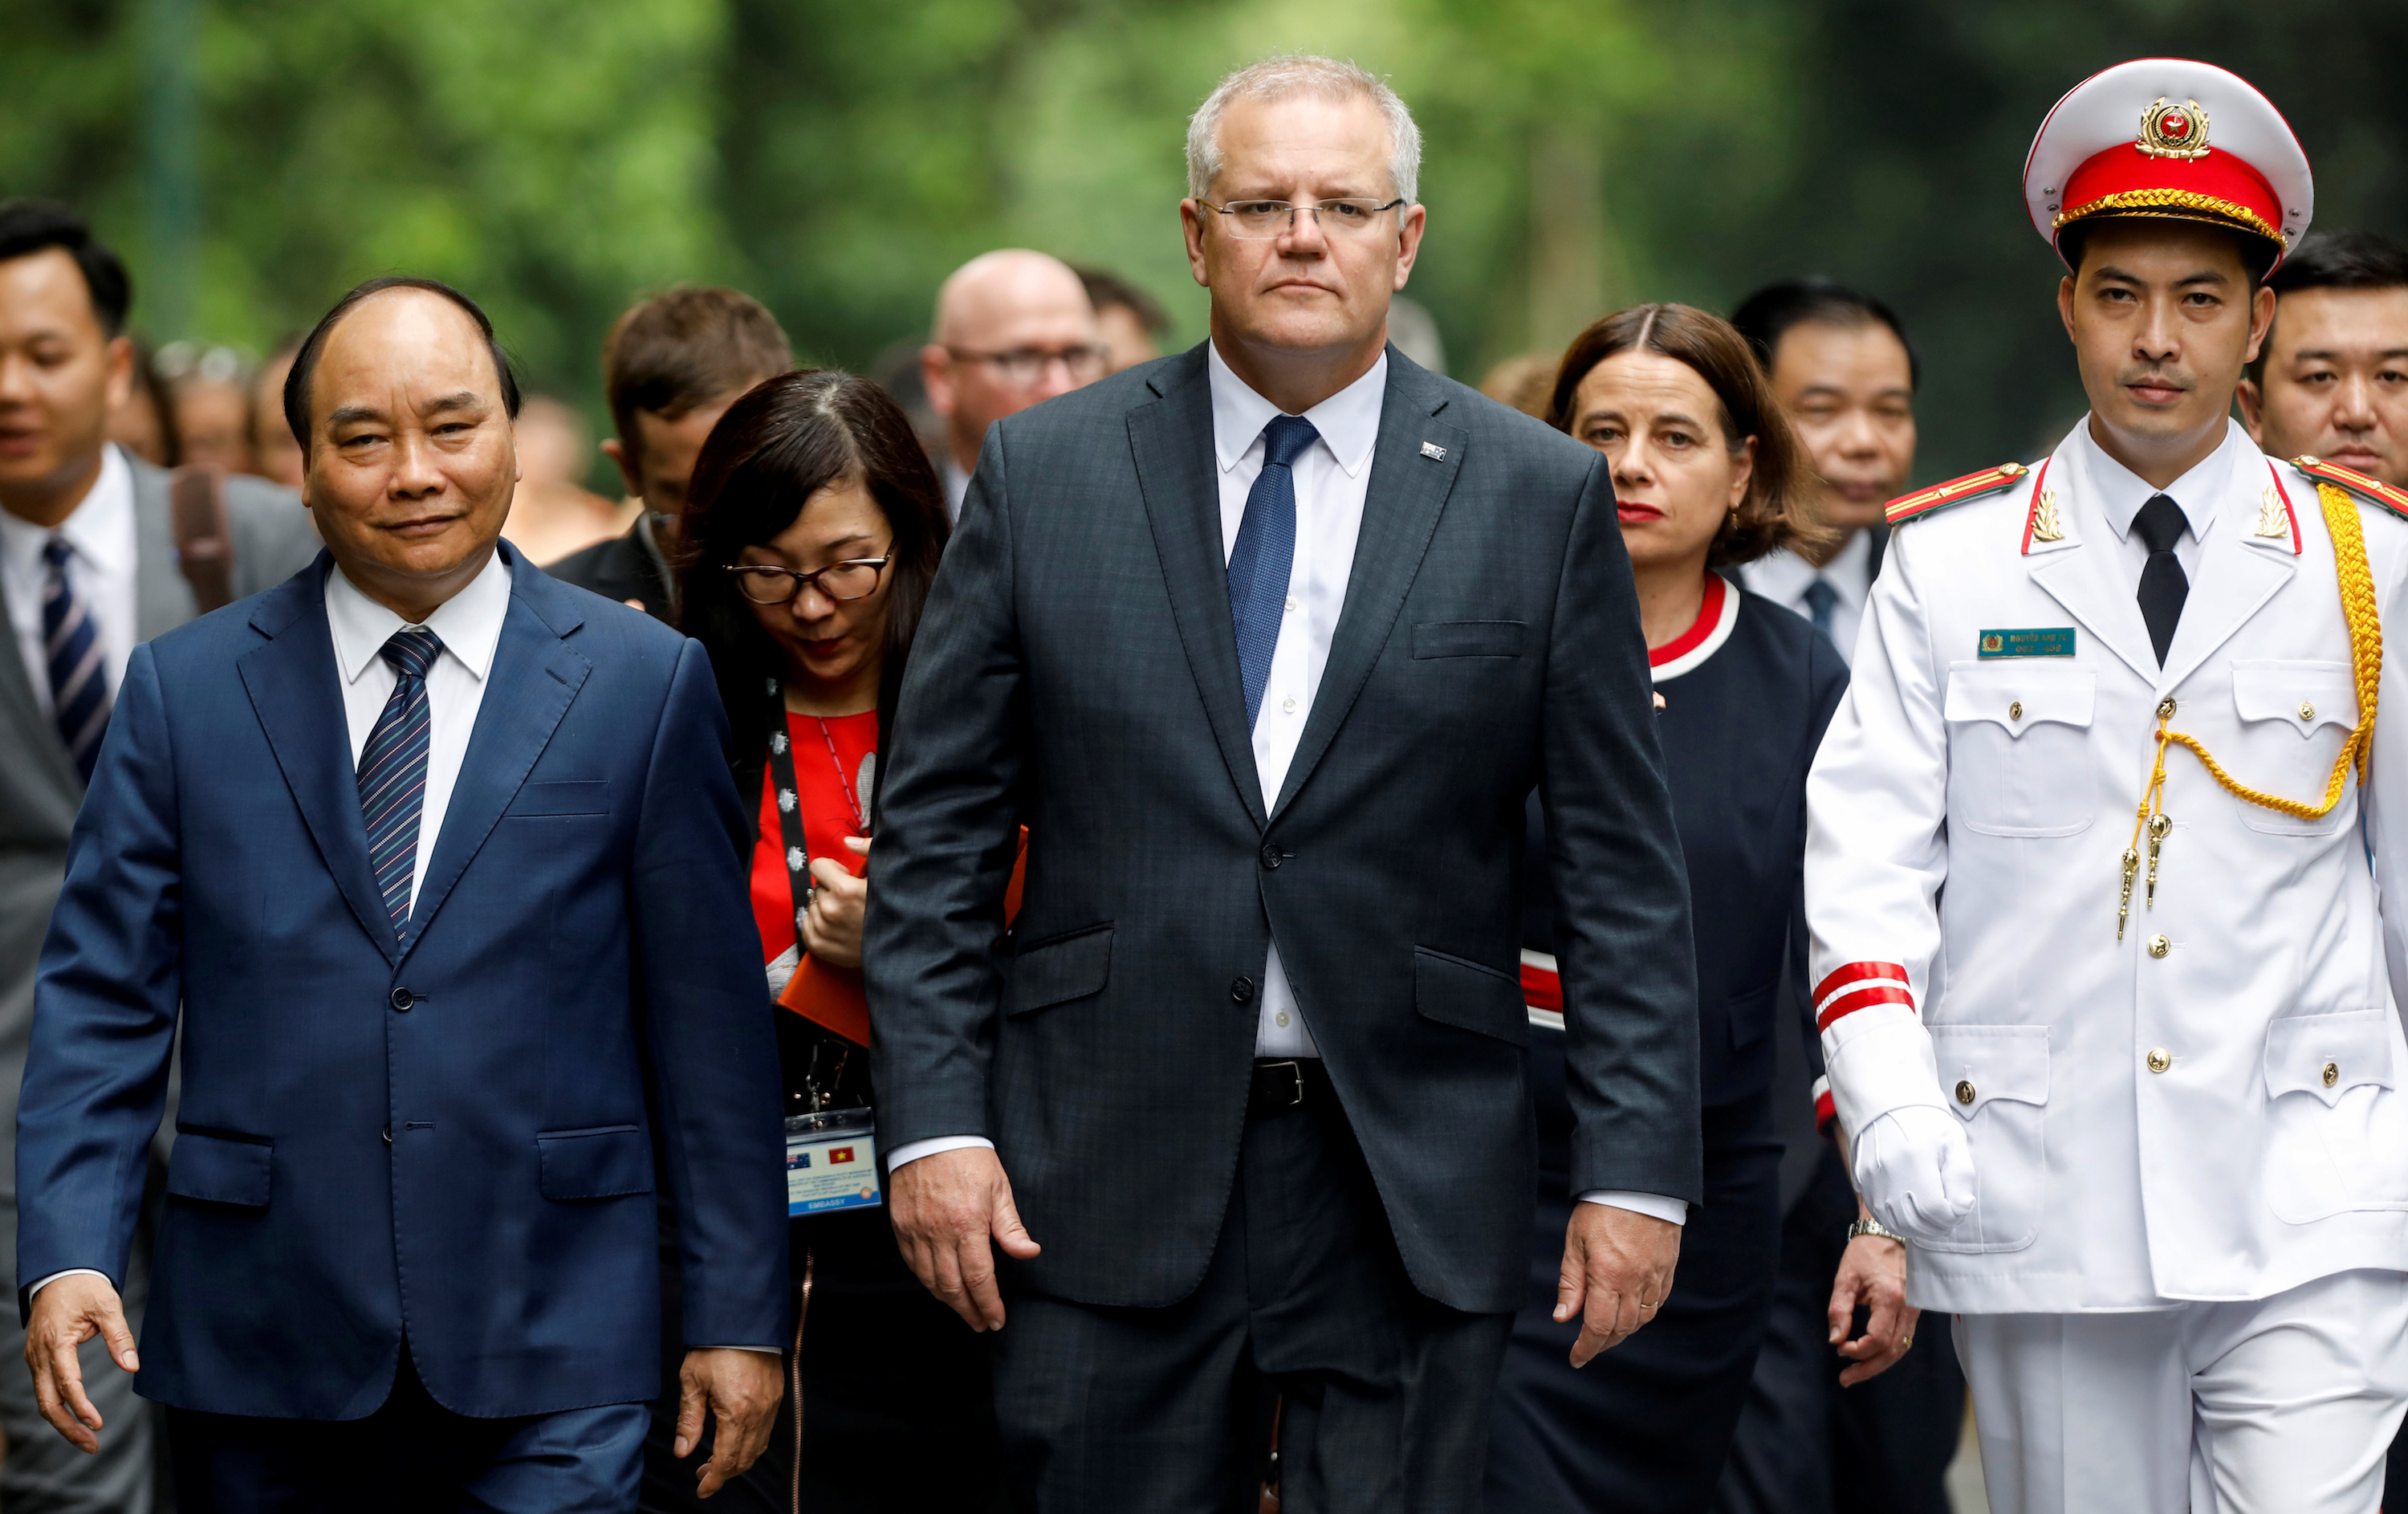 New Allies Vietnam, Australia Express Concern Over China's Activities in South China Sea